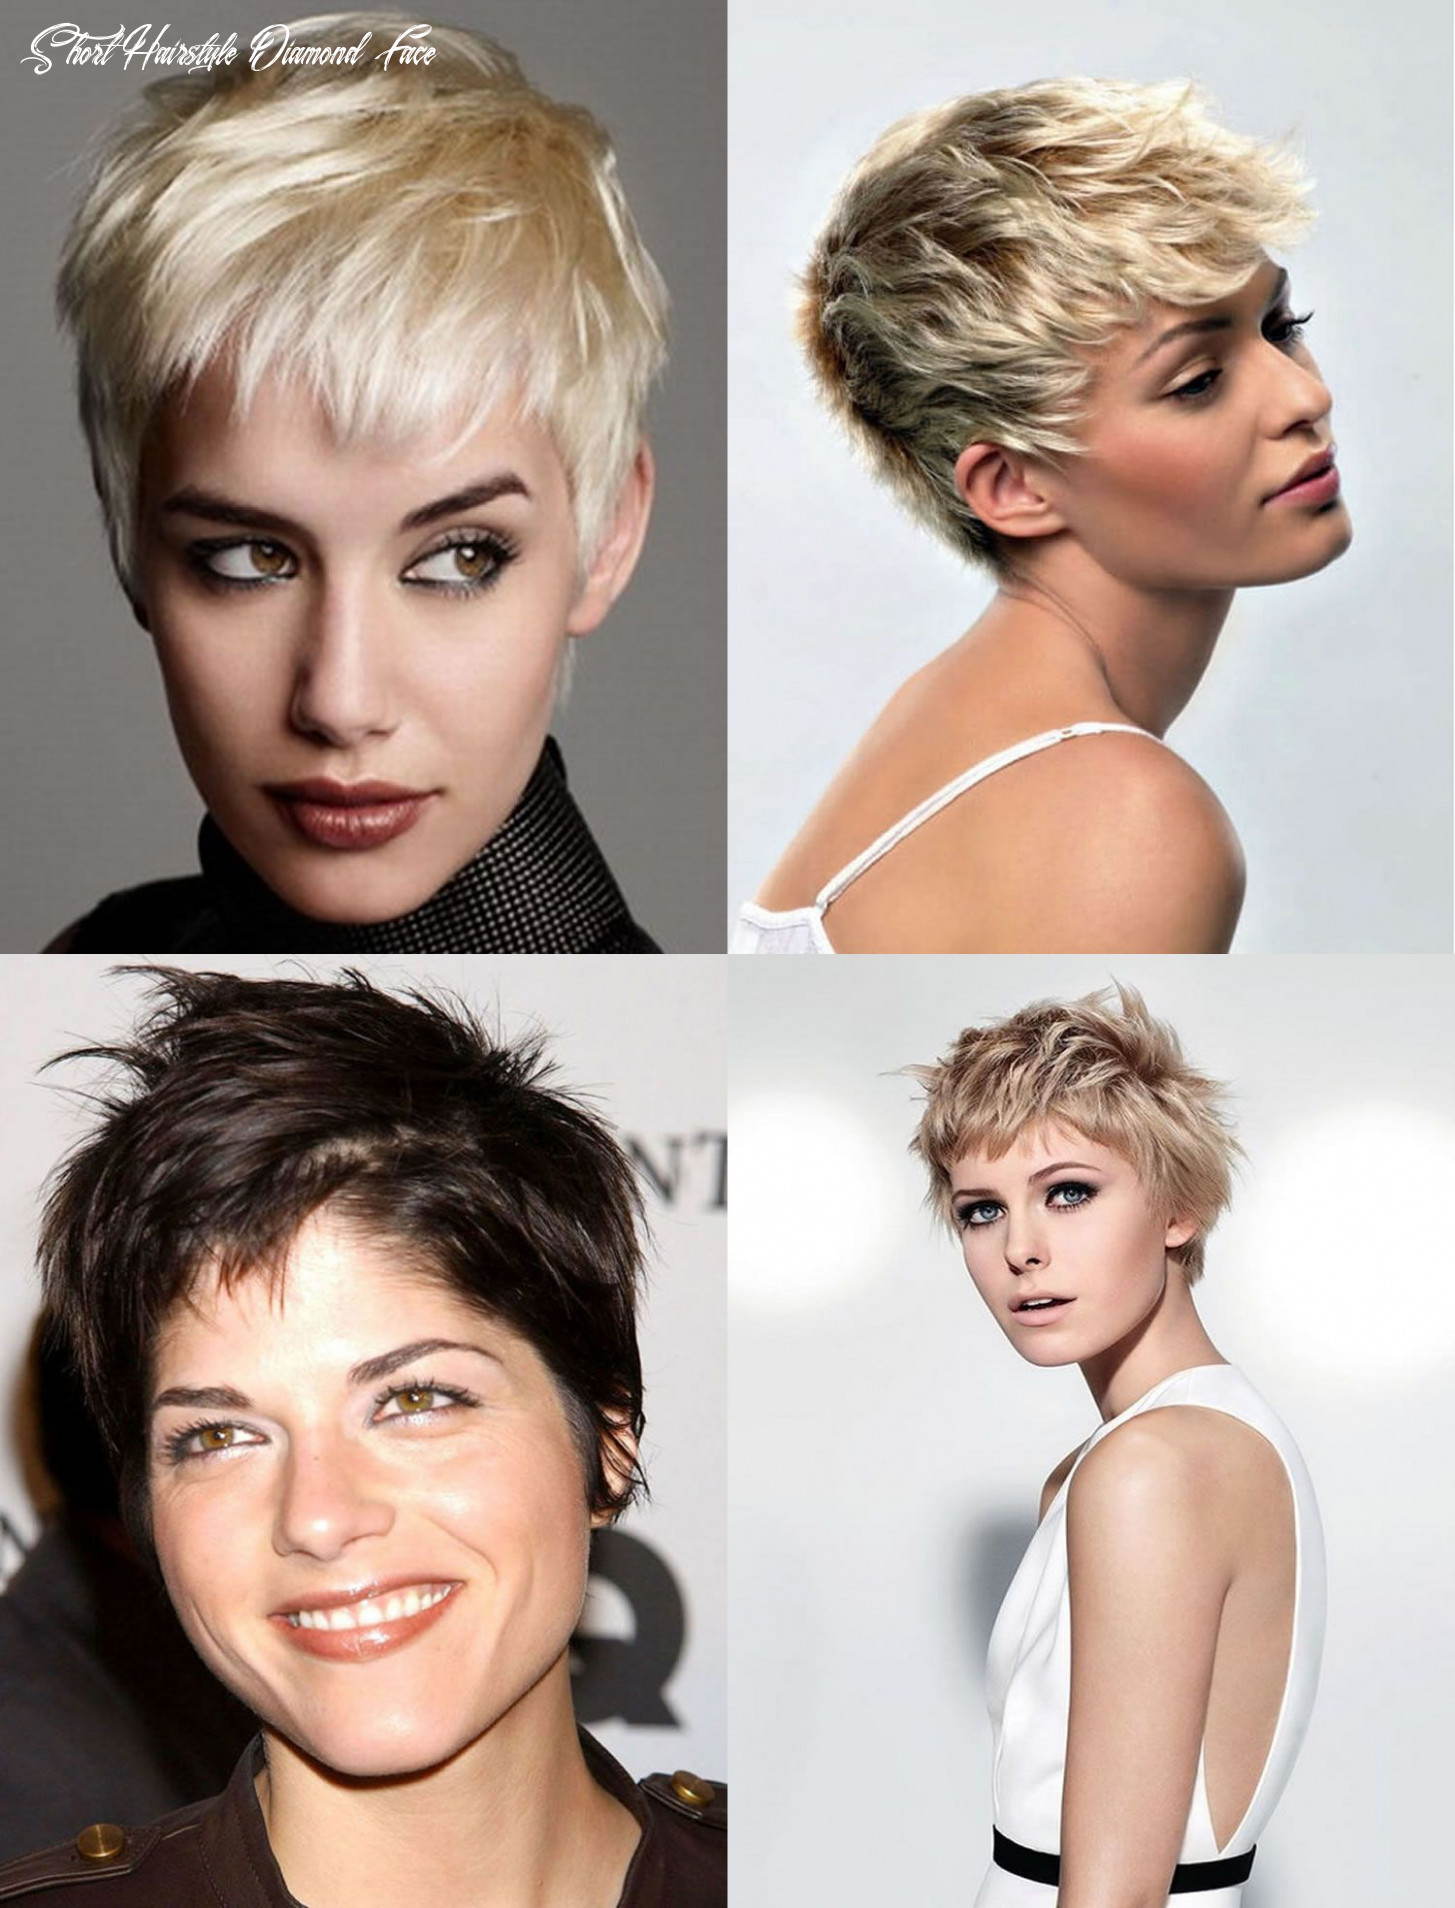 11 incredible hairstyles for diamond face shape | face shape